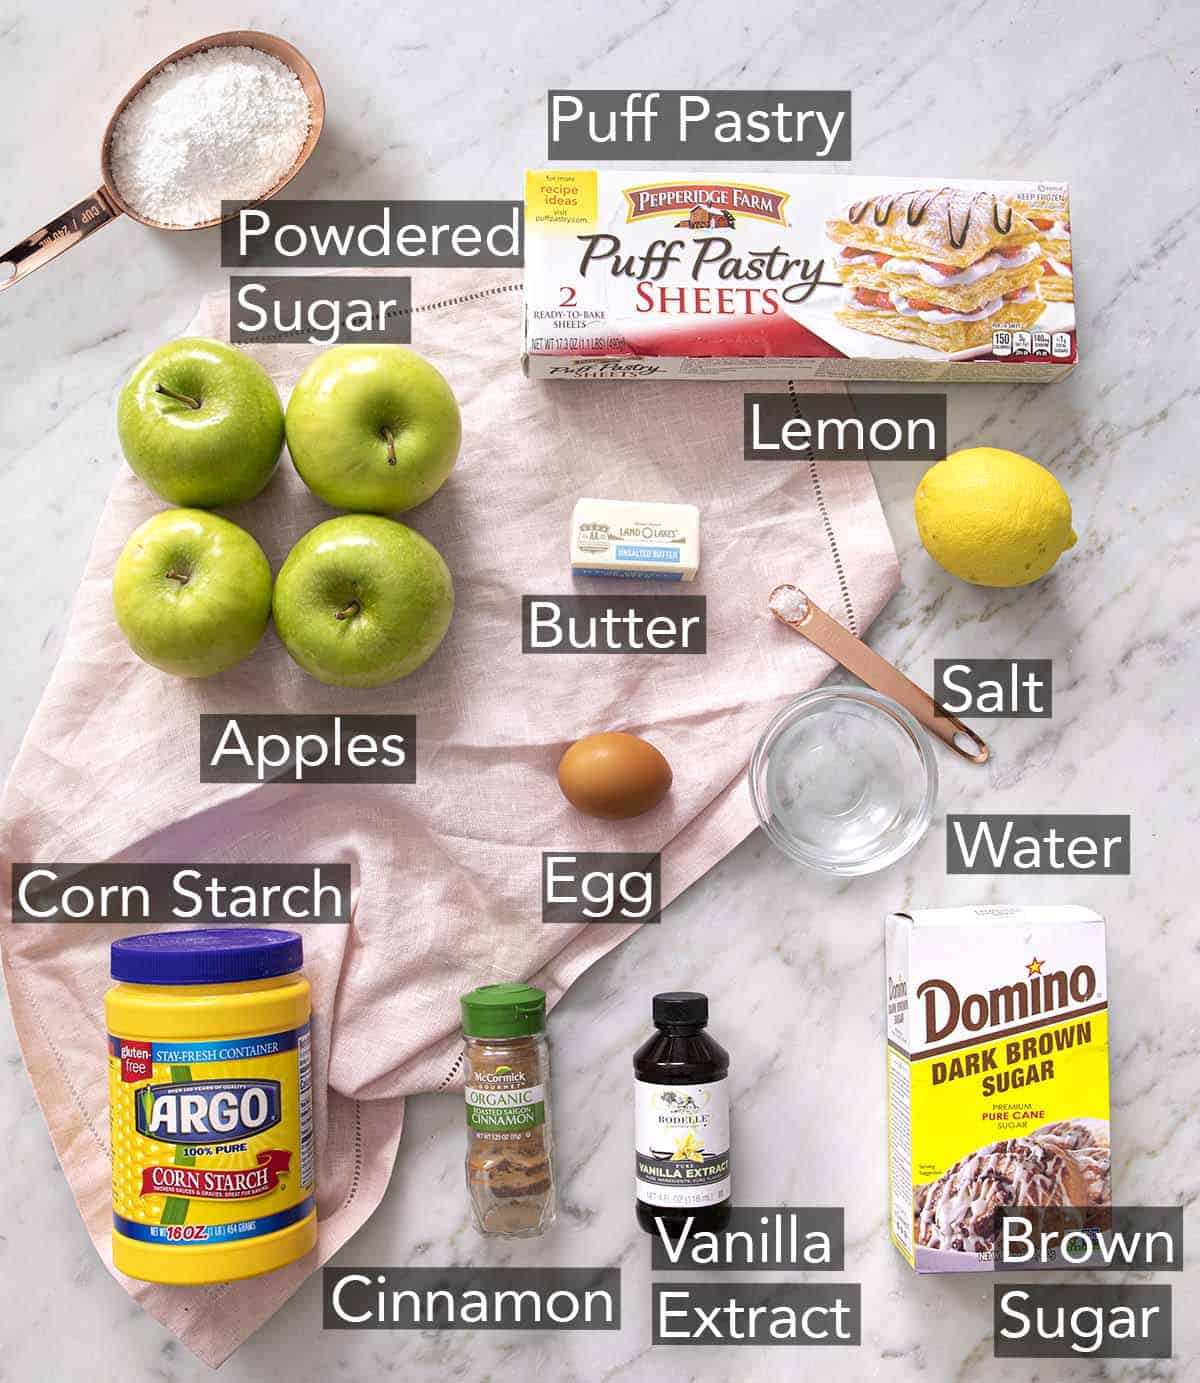 Ingredients for making apple turnovers on a counter.